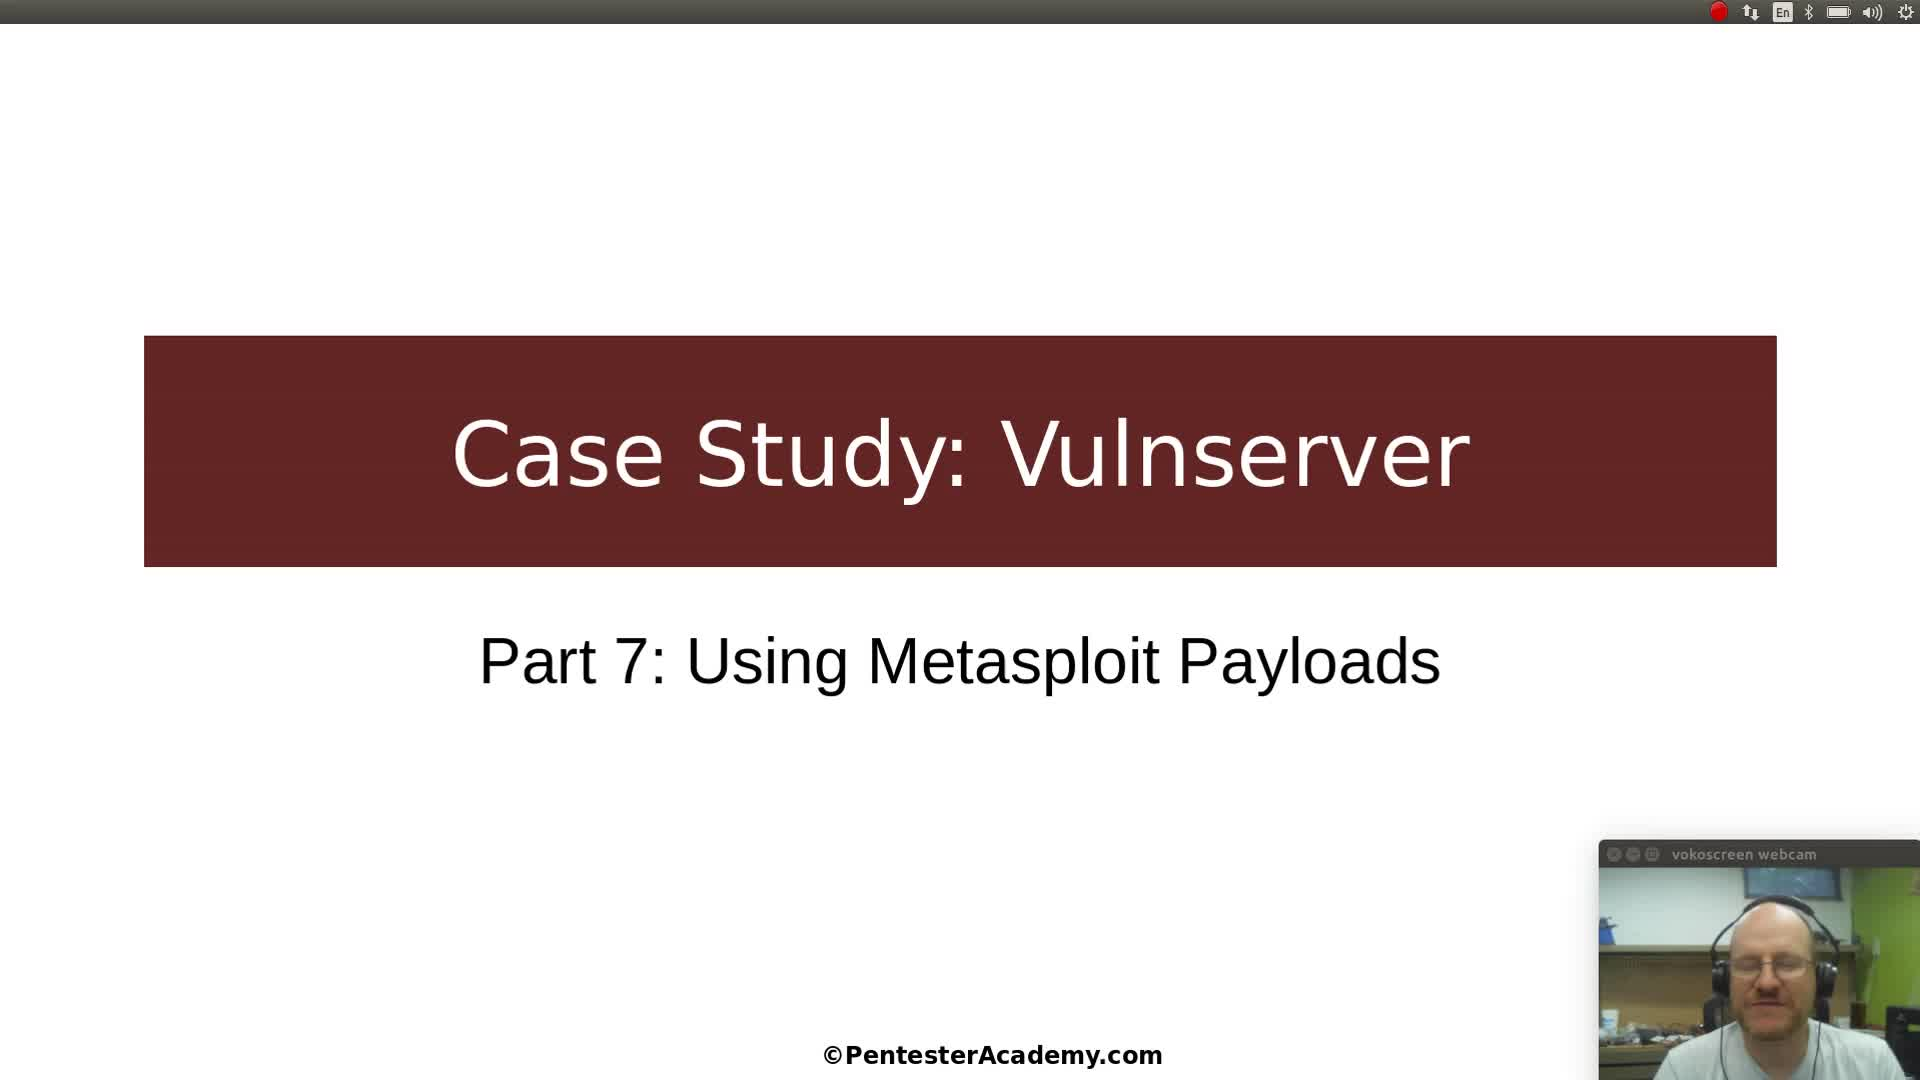 Case Study Vulnserver Part 7: Using Metasploit Payloads